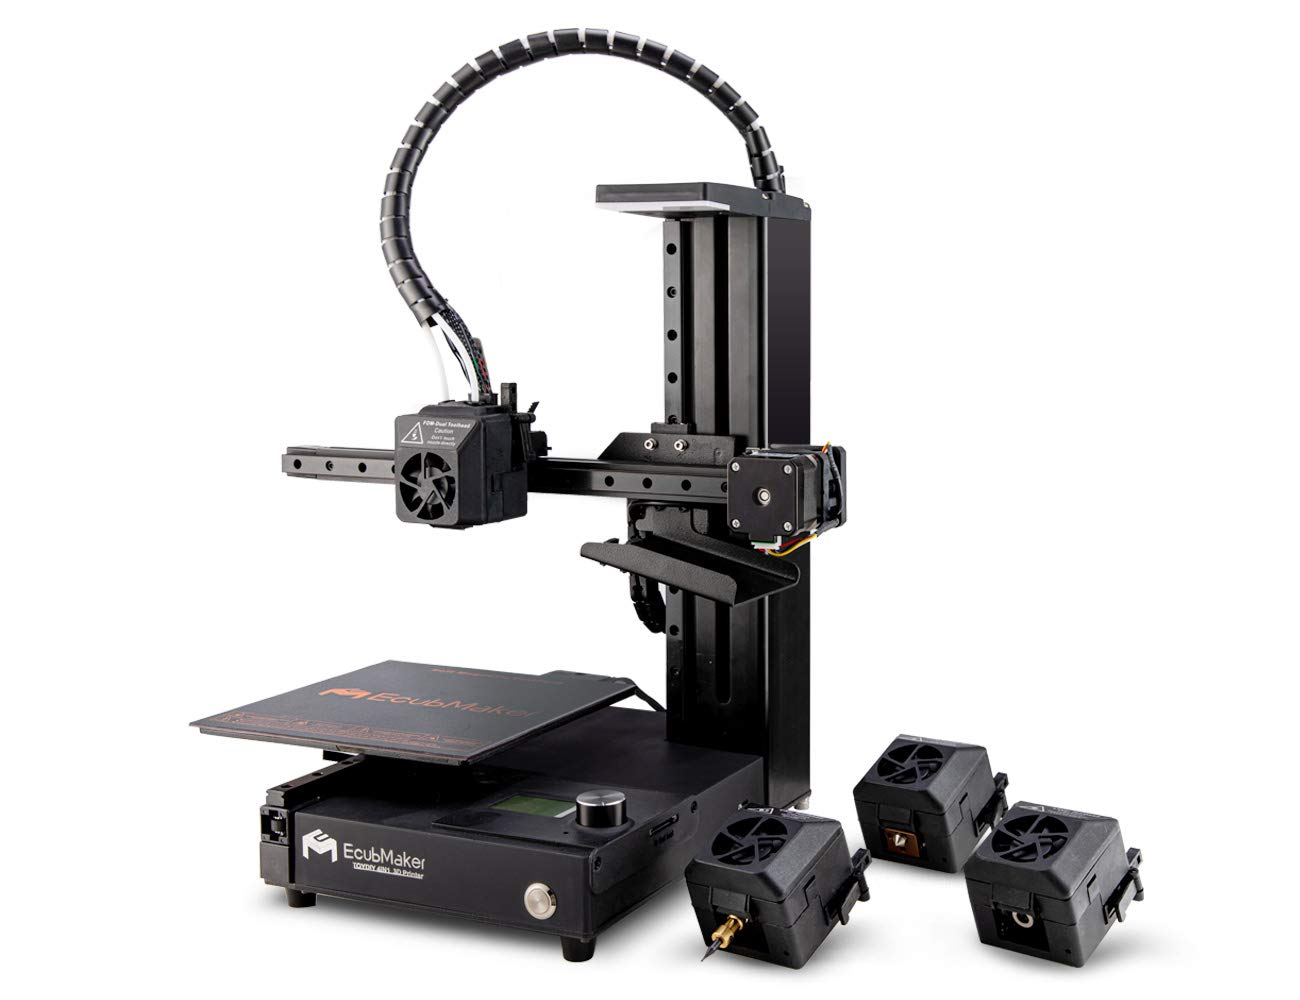 Top 10 3D Printer Projects to Try at Home - Makeblock